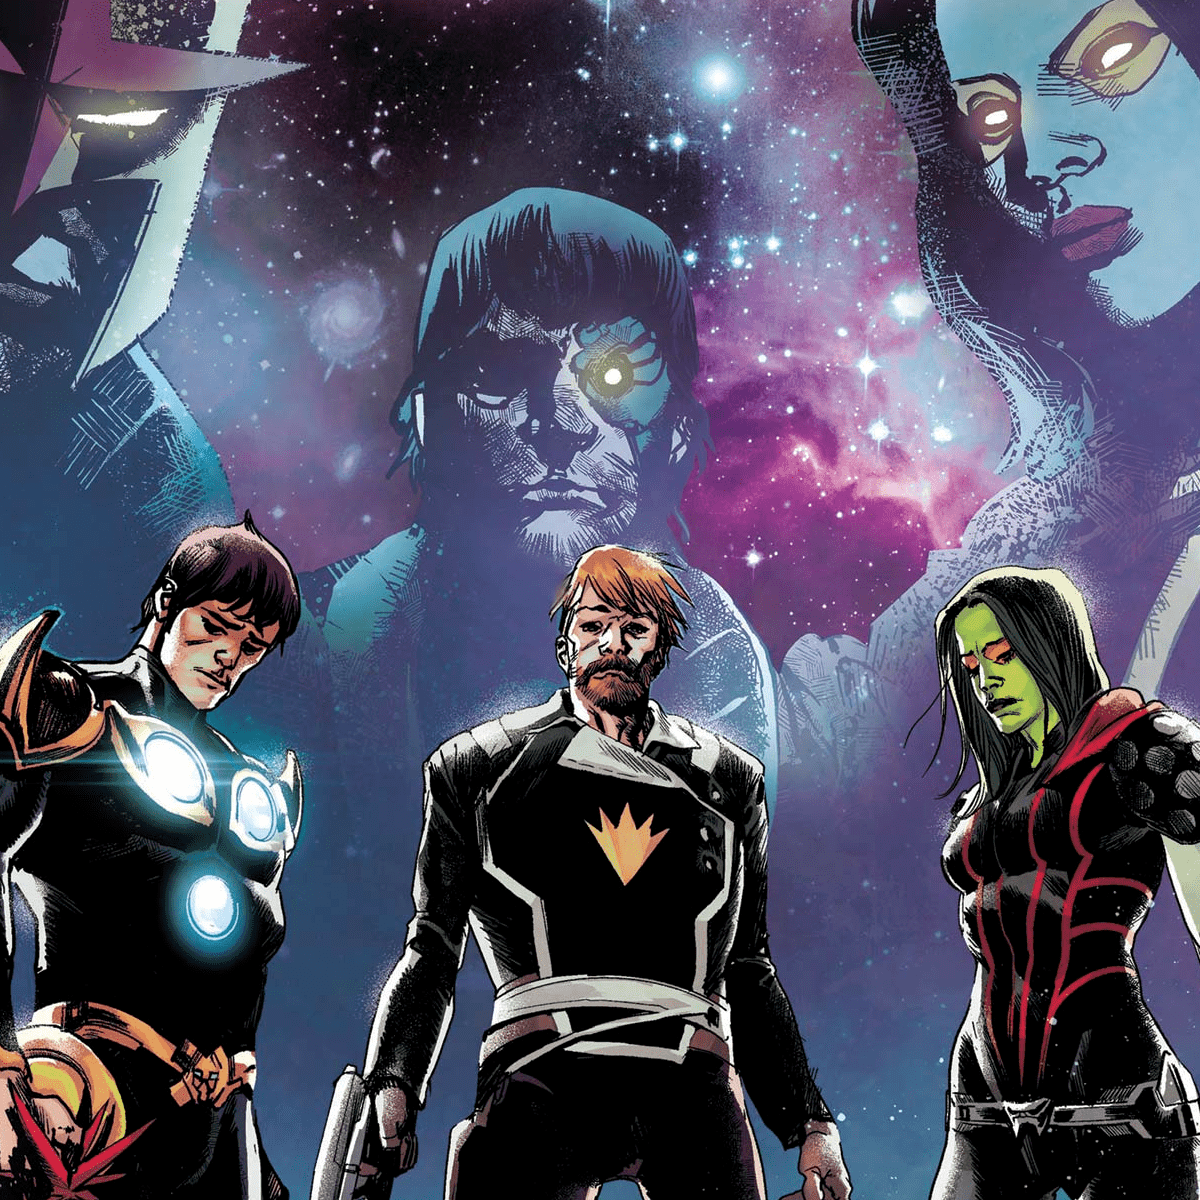 'Guardians of the Galaxy' #11 review